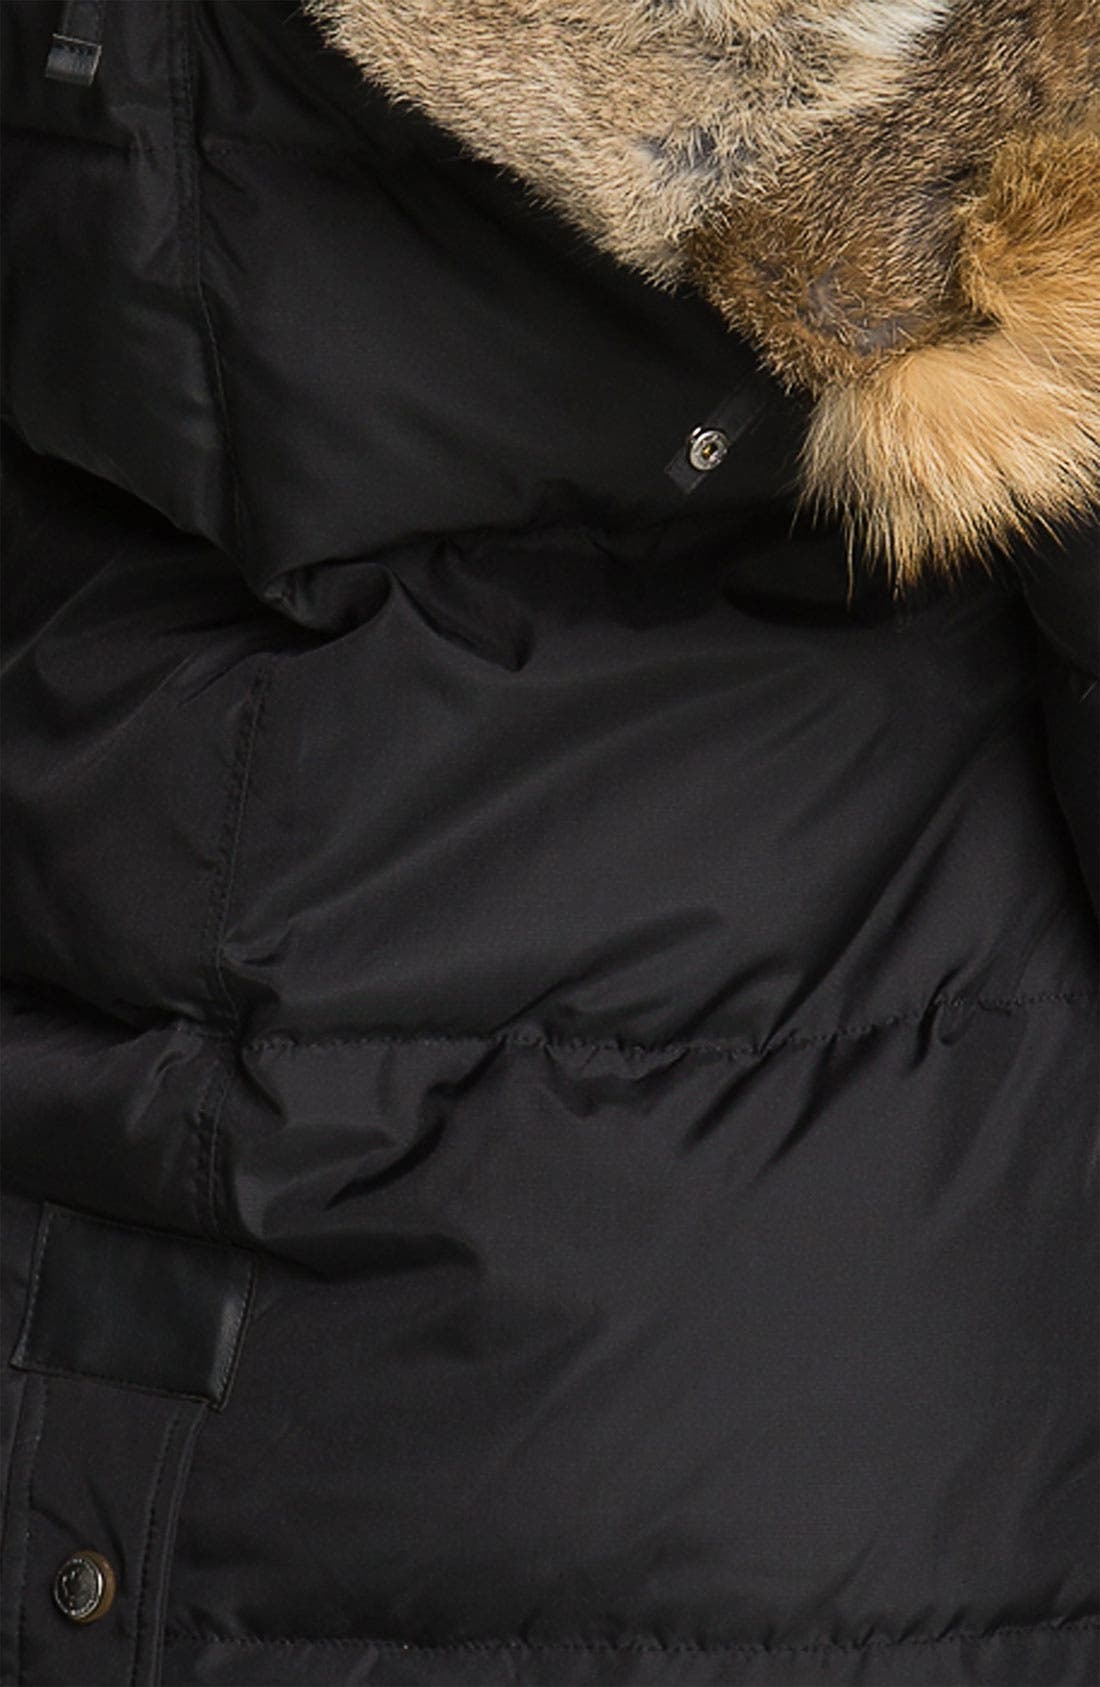 'Cougar' Down Parka with Genuine Coyote & Rabbit Fur,                             Alternate thumbnail 2, color,                             001